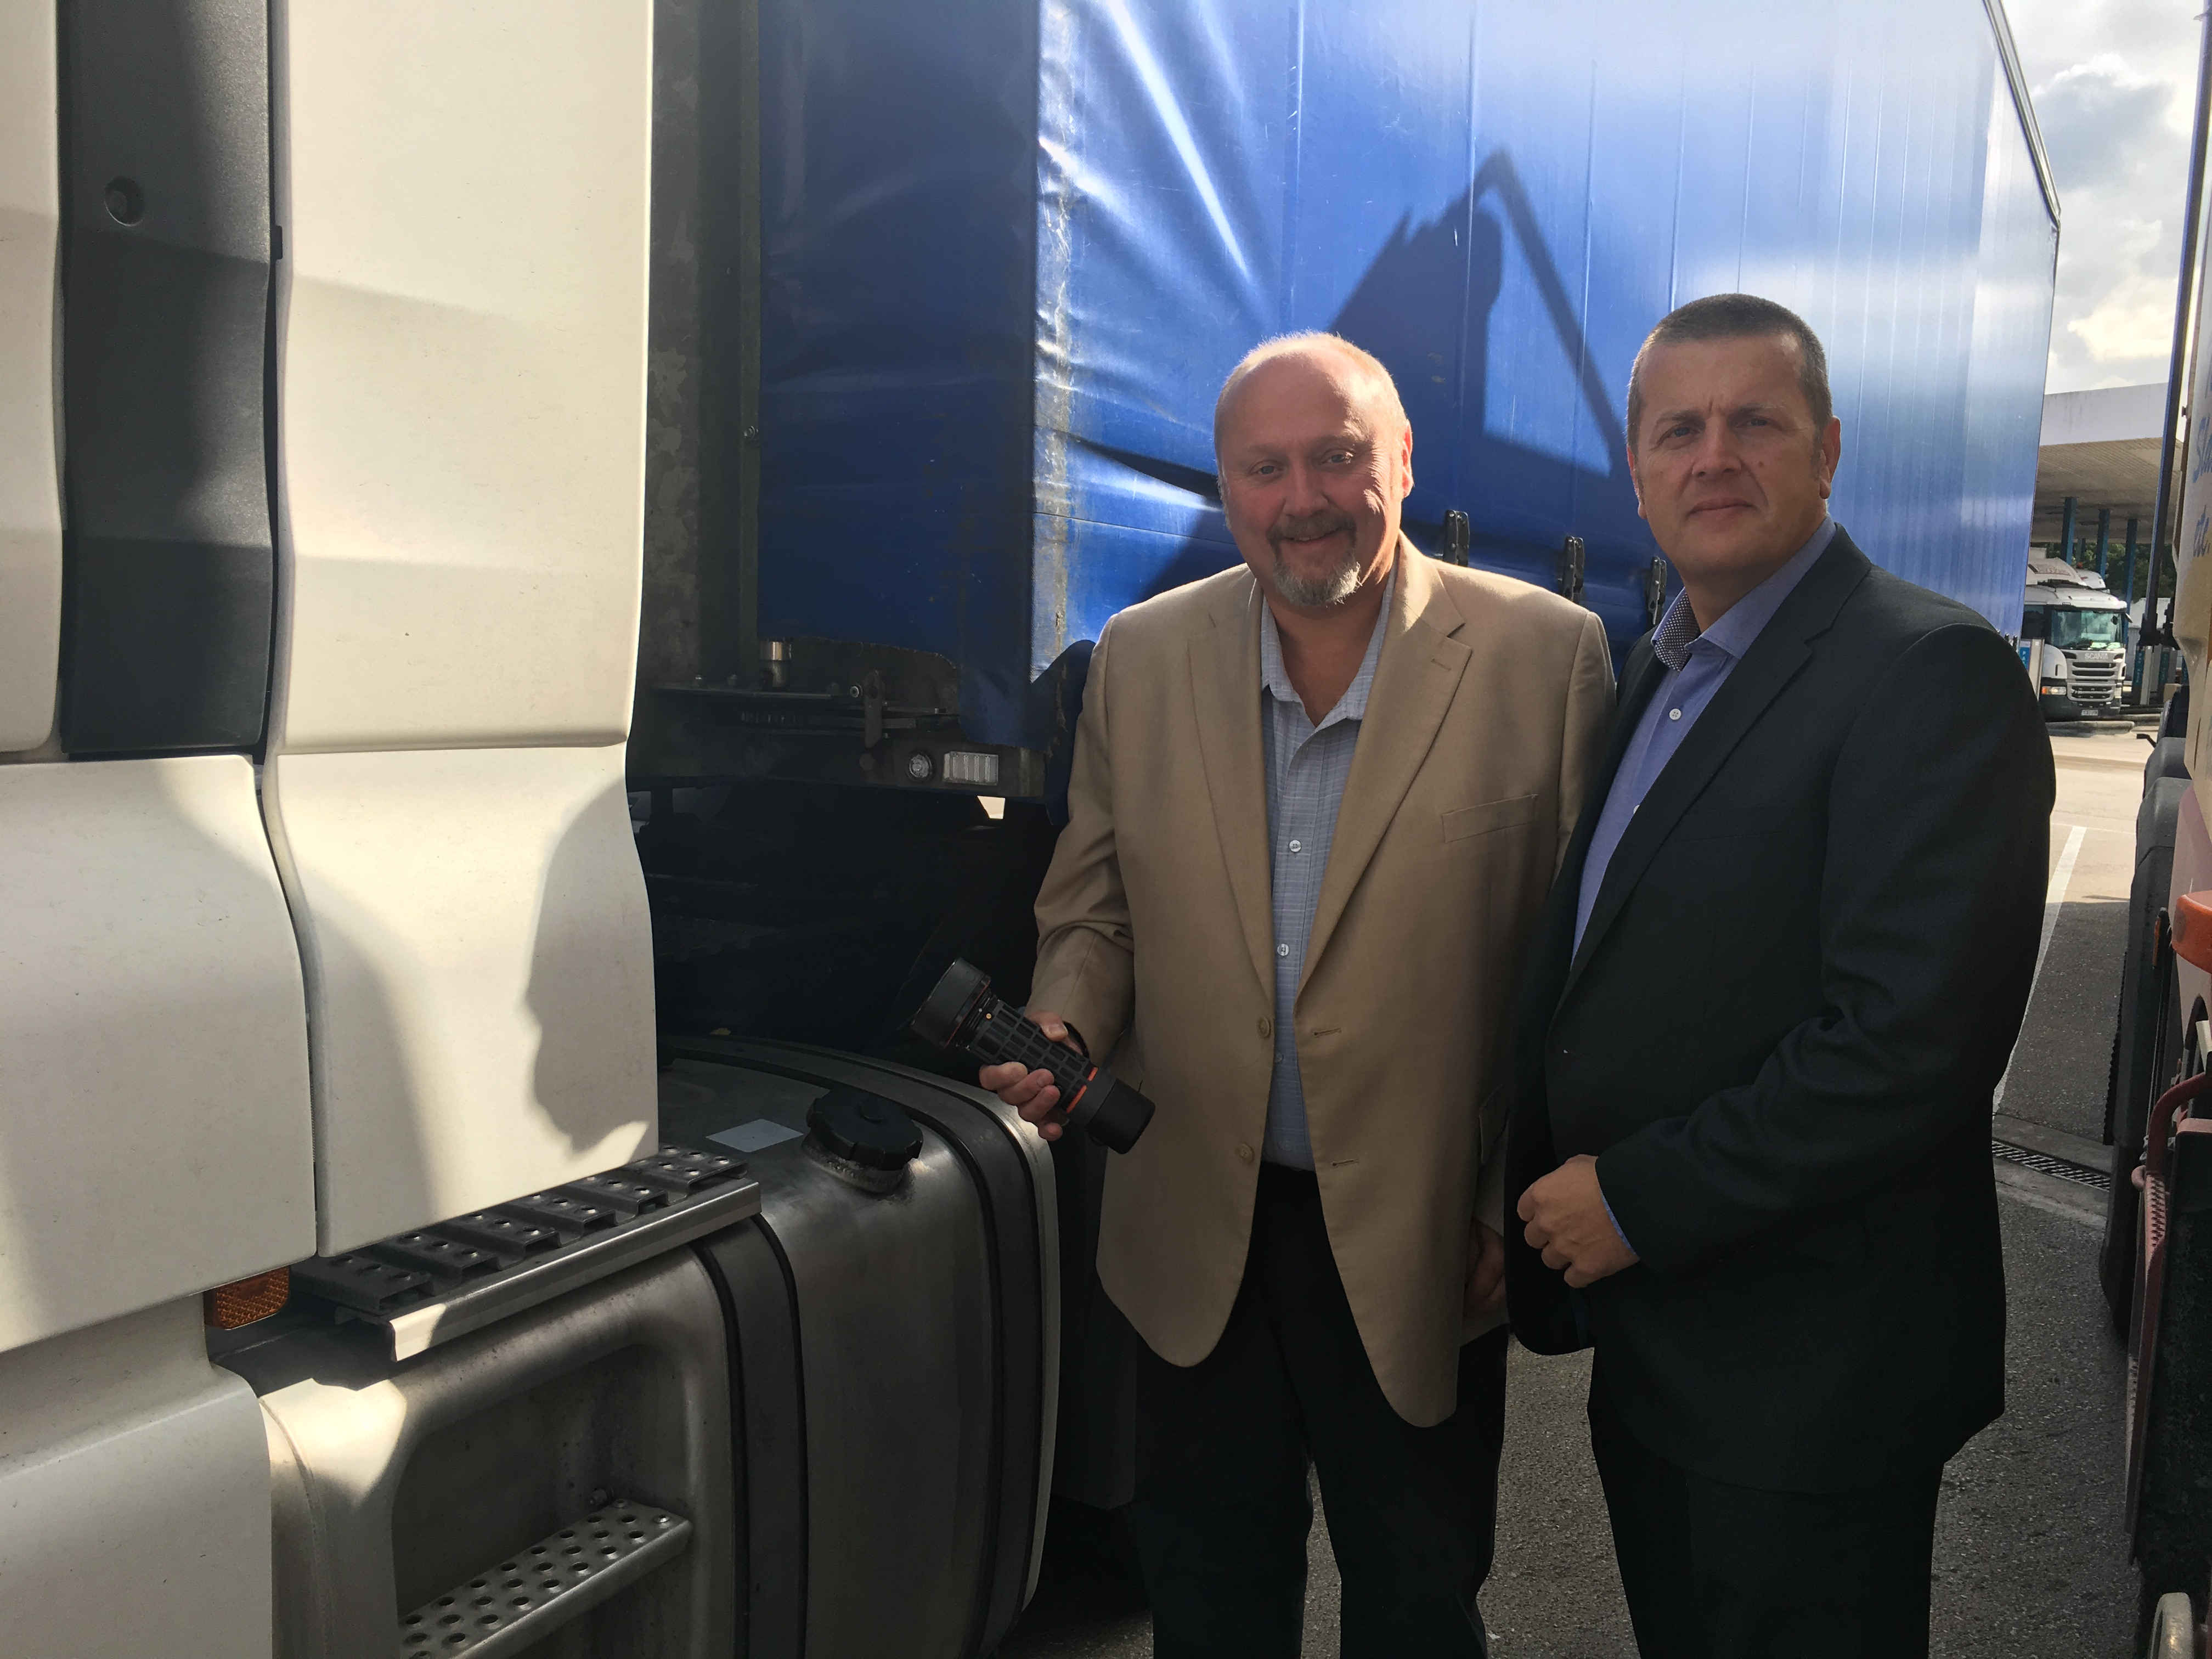 Fuel Theft Solutions has teamed up with Geoff Reyner, who will head up the sales of the Anti-siphon product range